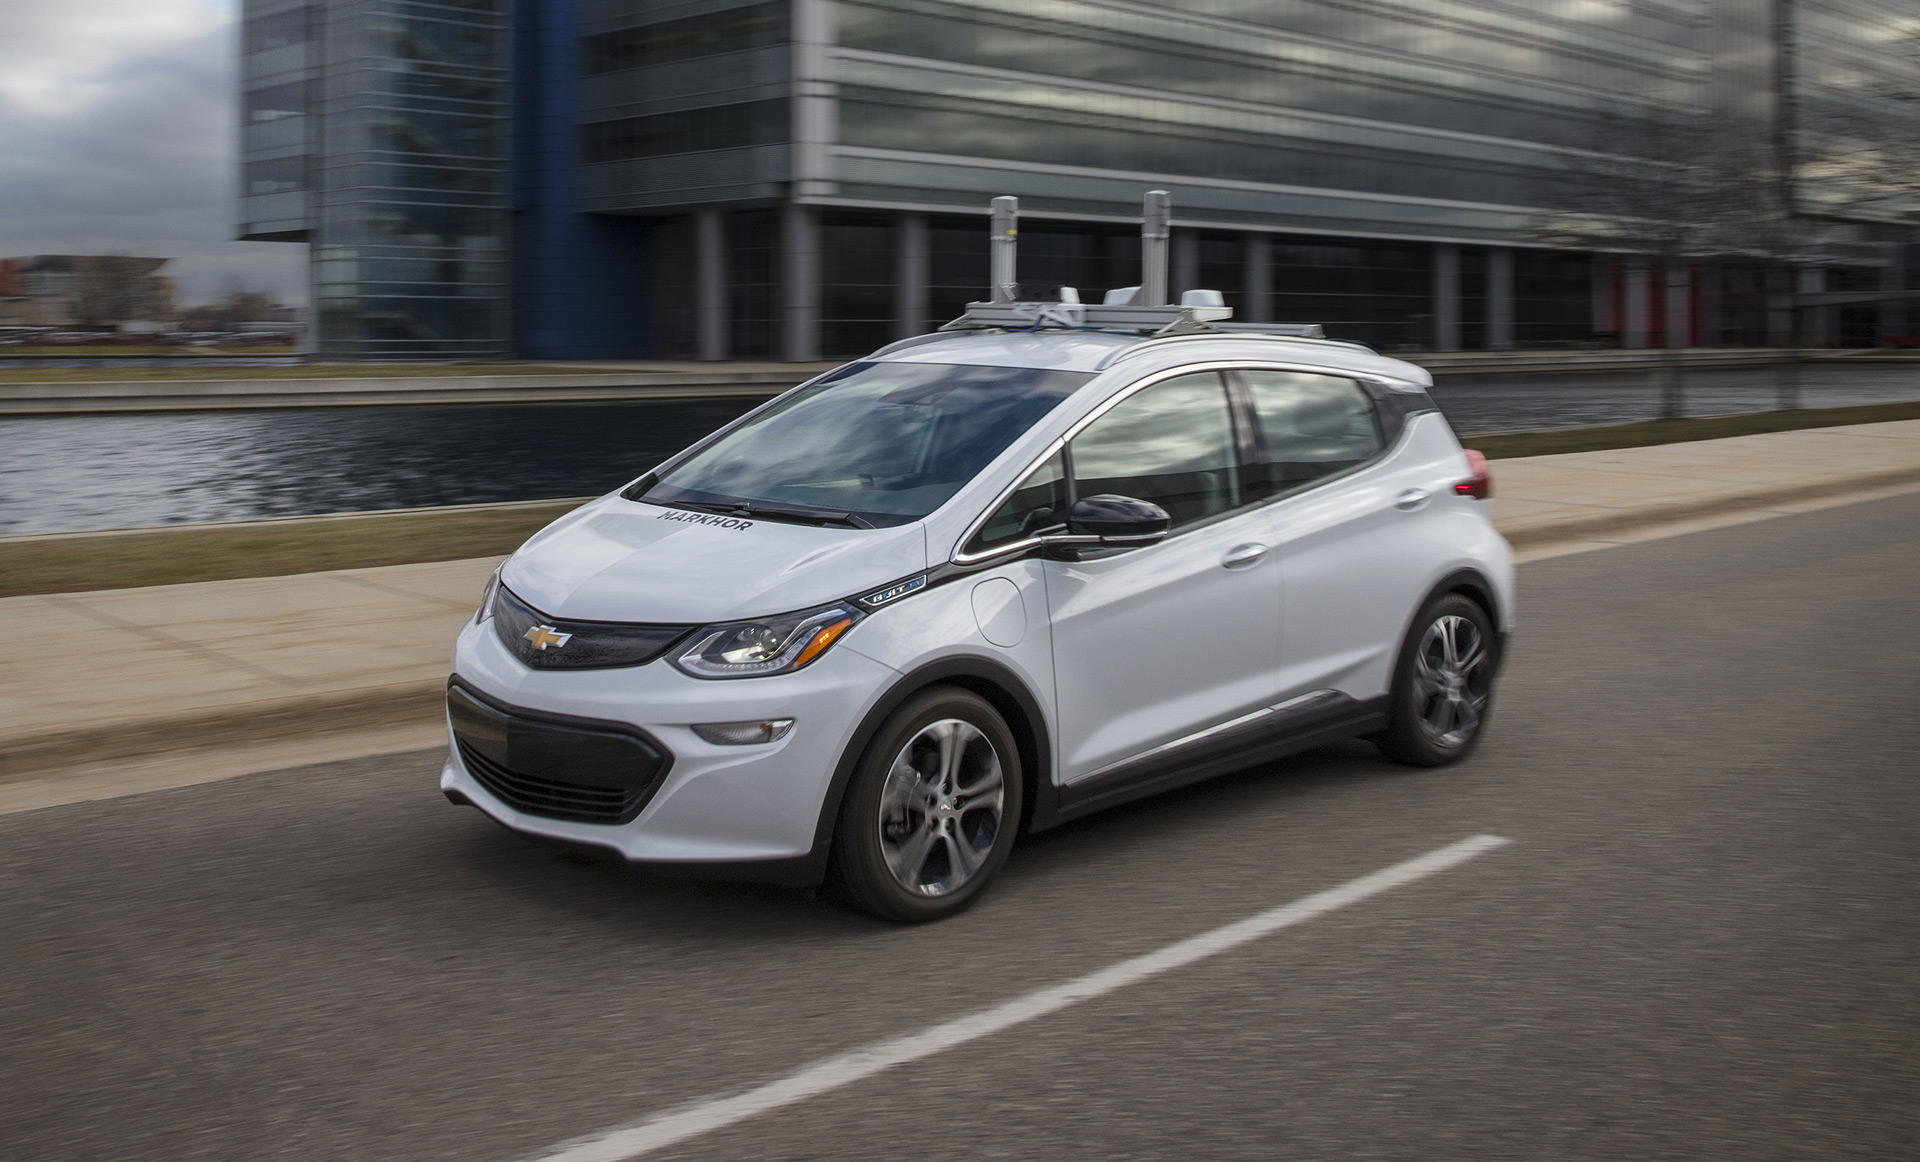 Thousands' of self-driving Bolt EVs to be deployed next year